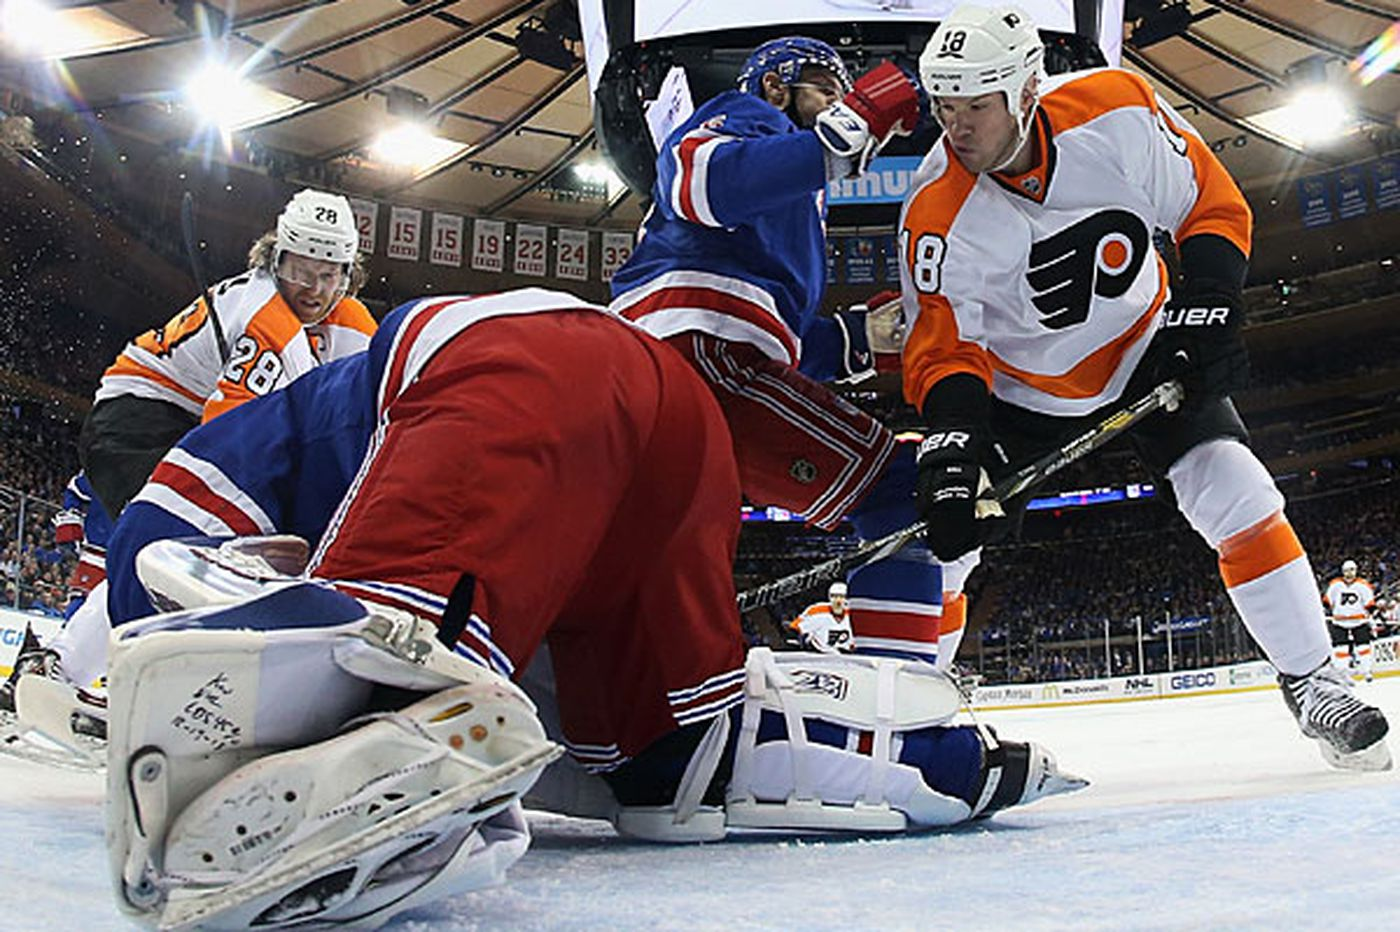 Flyers Notes: Flyers' top line stymied again by Rangers